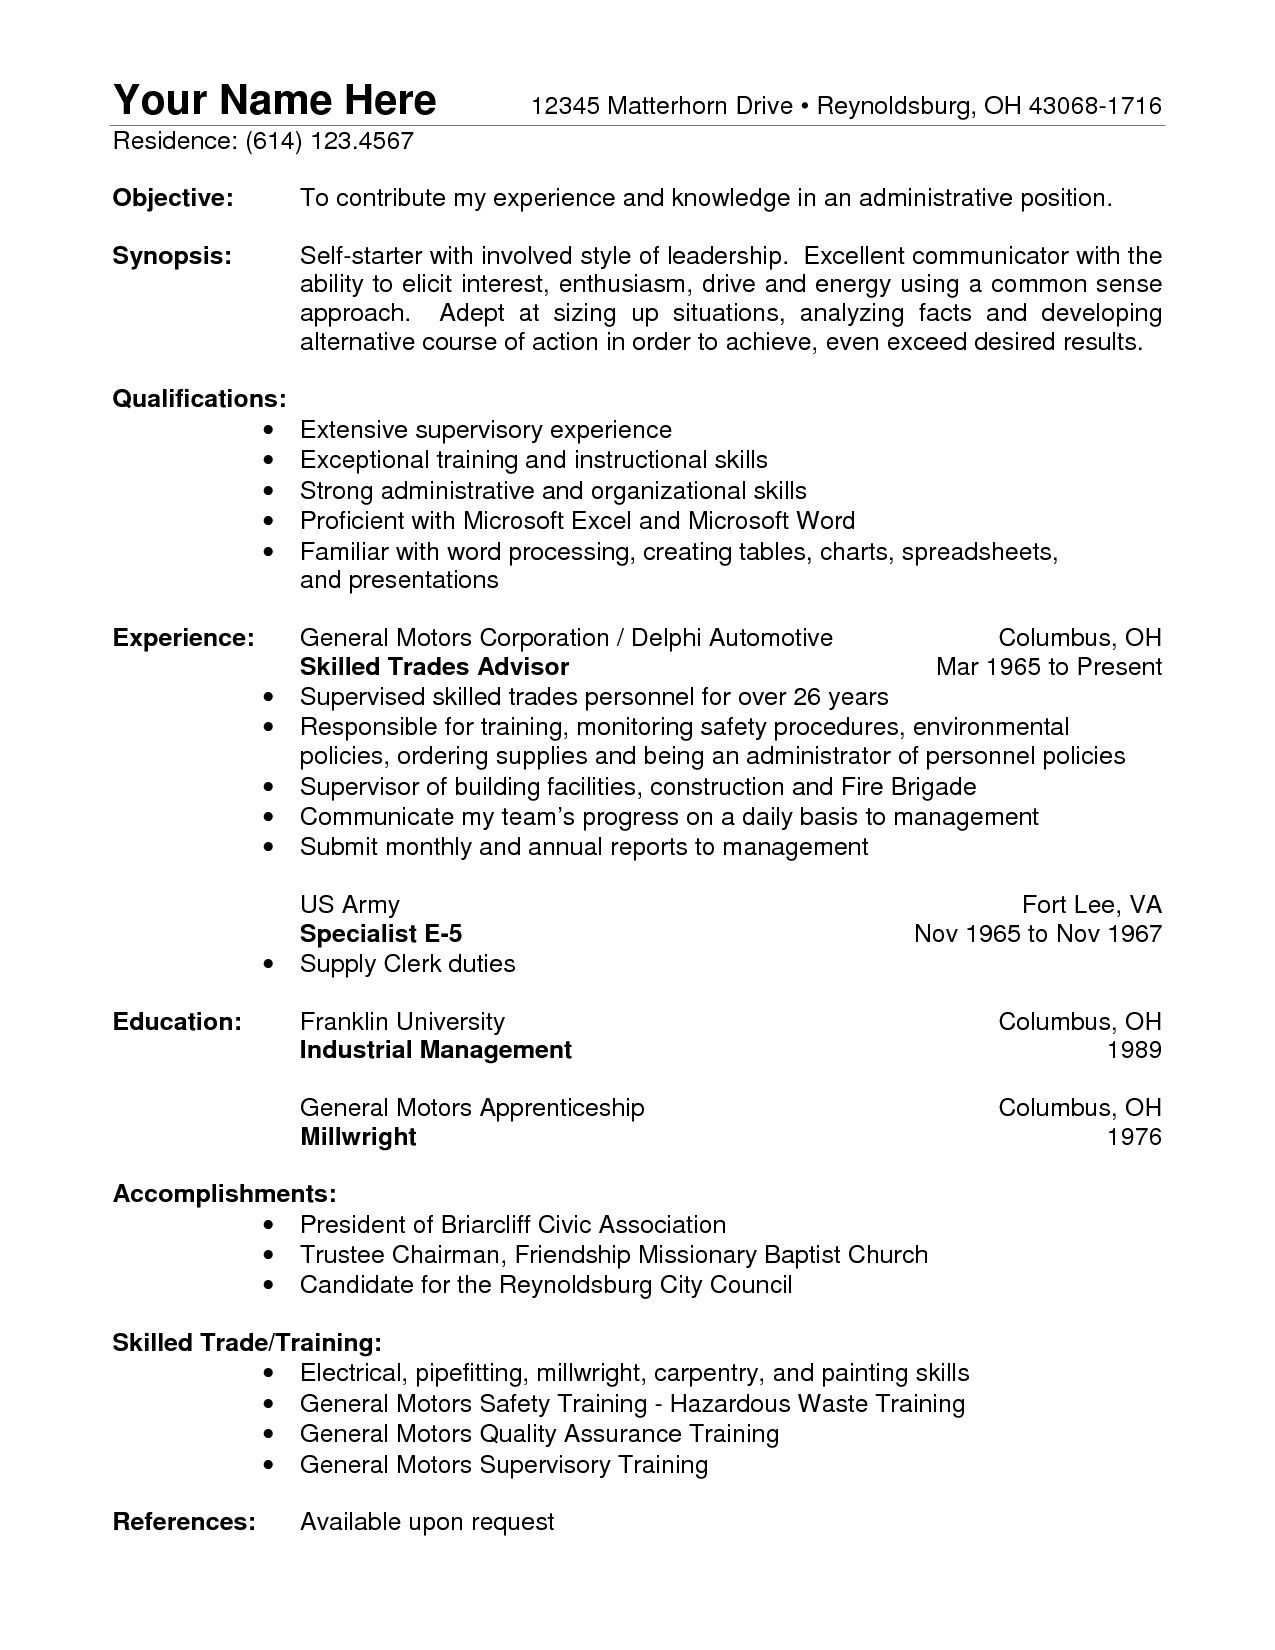 warehouse resume no experience jobresumesample com  warehouse resume no experience are really great examples of resume and curriculum vitae for those who are looking for job